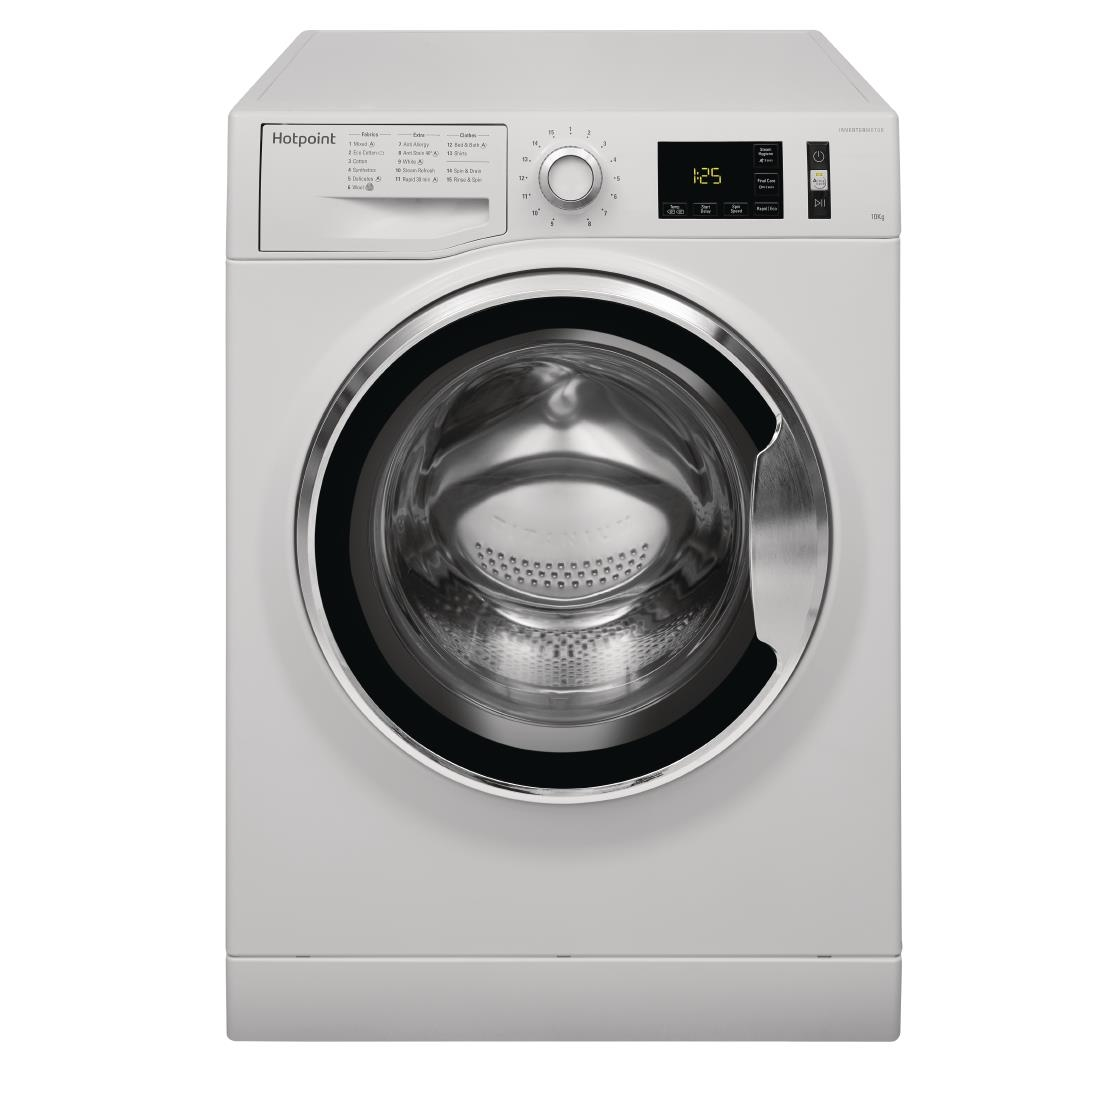 Image of Hotpoint ActiveCare Washing Machine NM11 1045 WC A